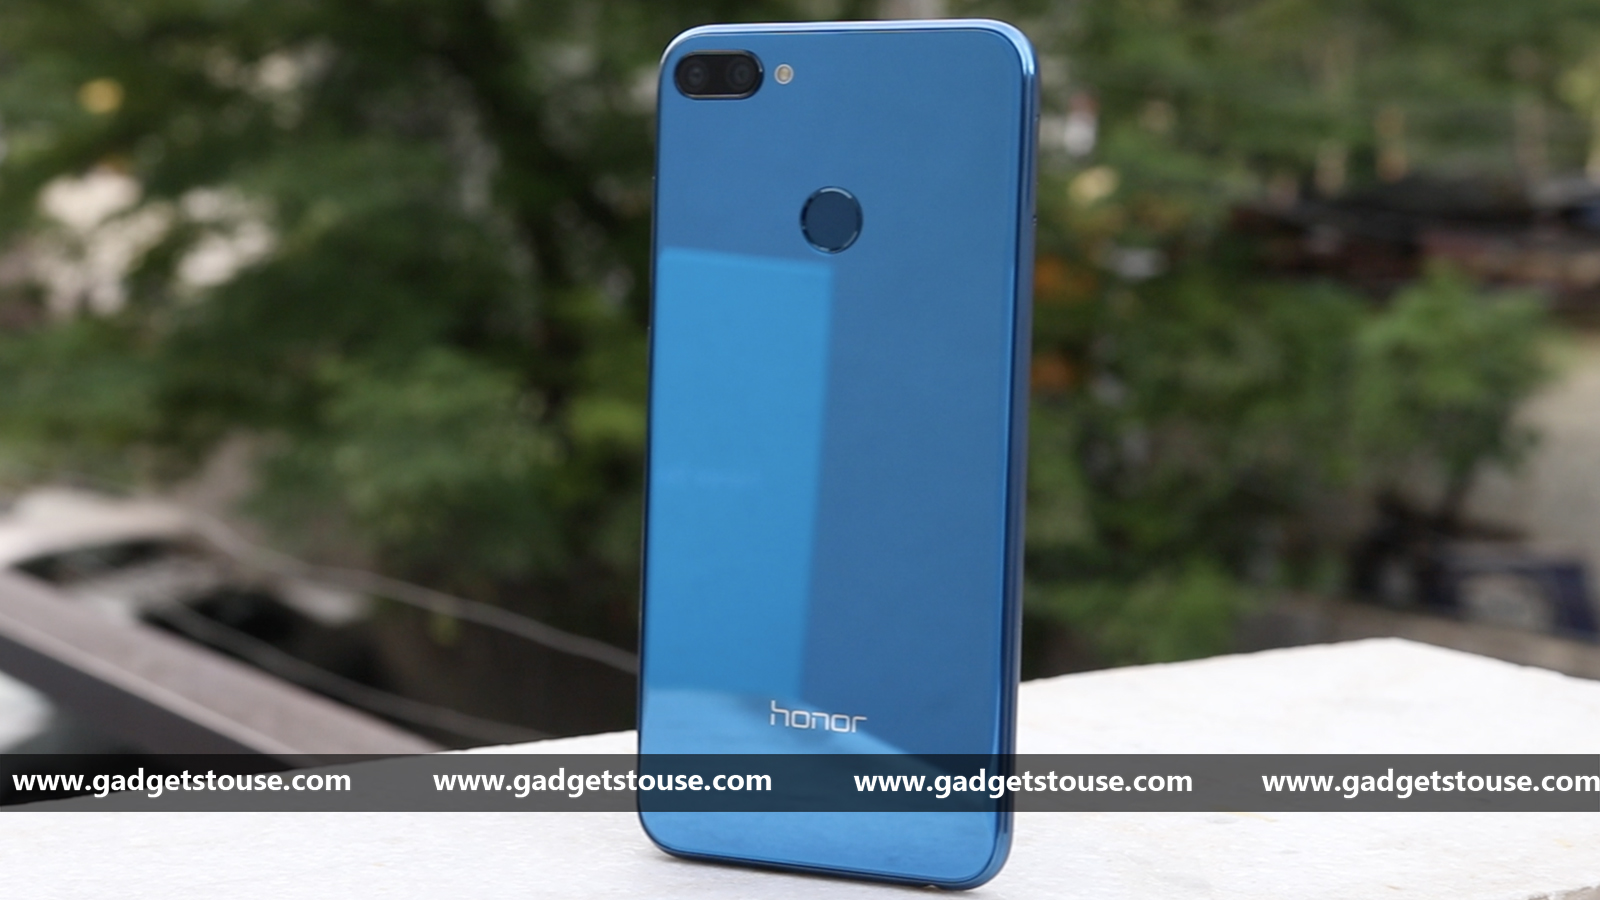 - 2 2 - Everything you should know about the latest budget phone